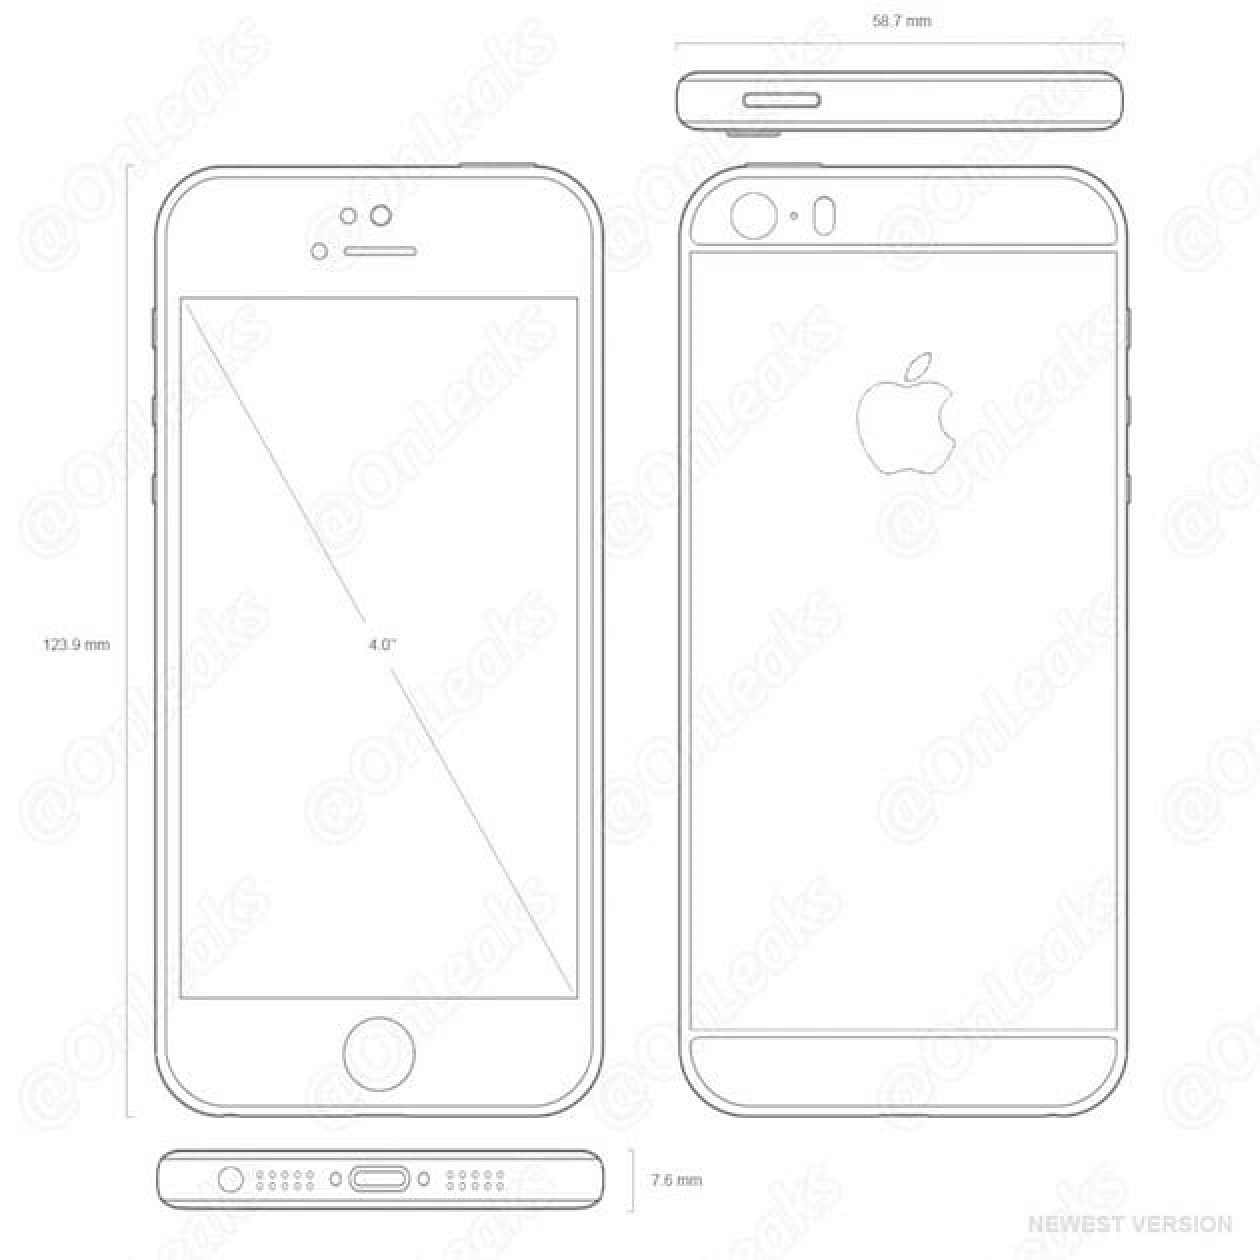 iphone5seschematic